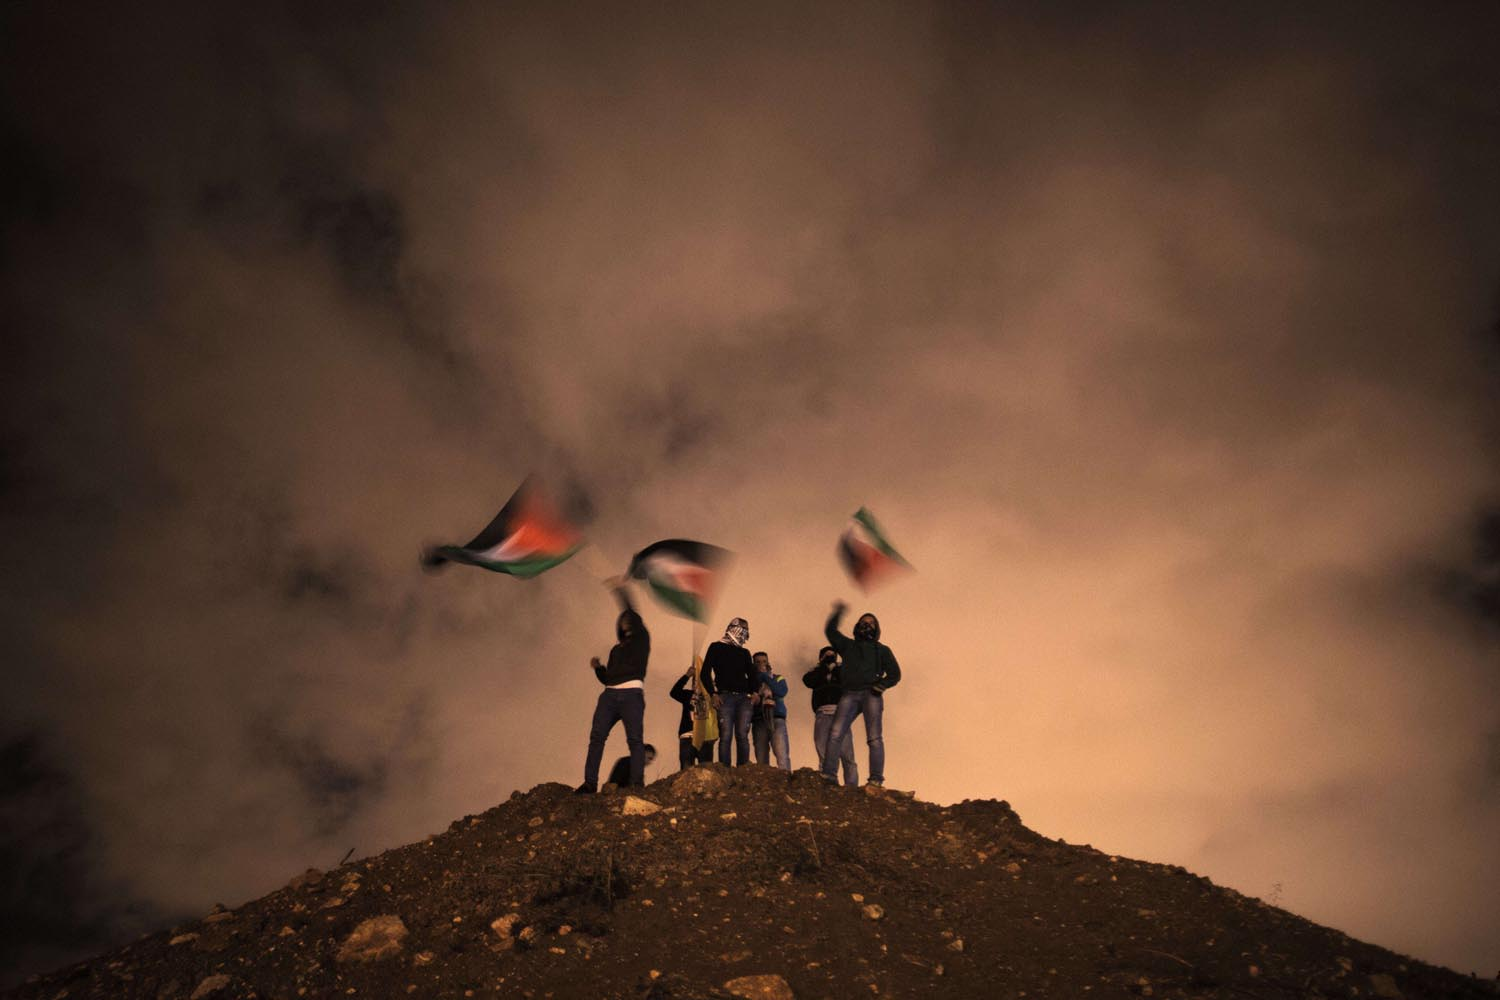 Dec. 31, 2013.                                Palestinians wave their national flag as they await the release of Palestinian prisoners to Jerusalem December 31, 2013. Israel has freed 26 Palestinian prisoners under peace talks brokered by US Secretary of State John Kerry, who returned to the region to boost the faltering negotiations.